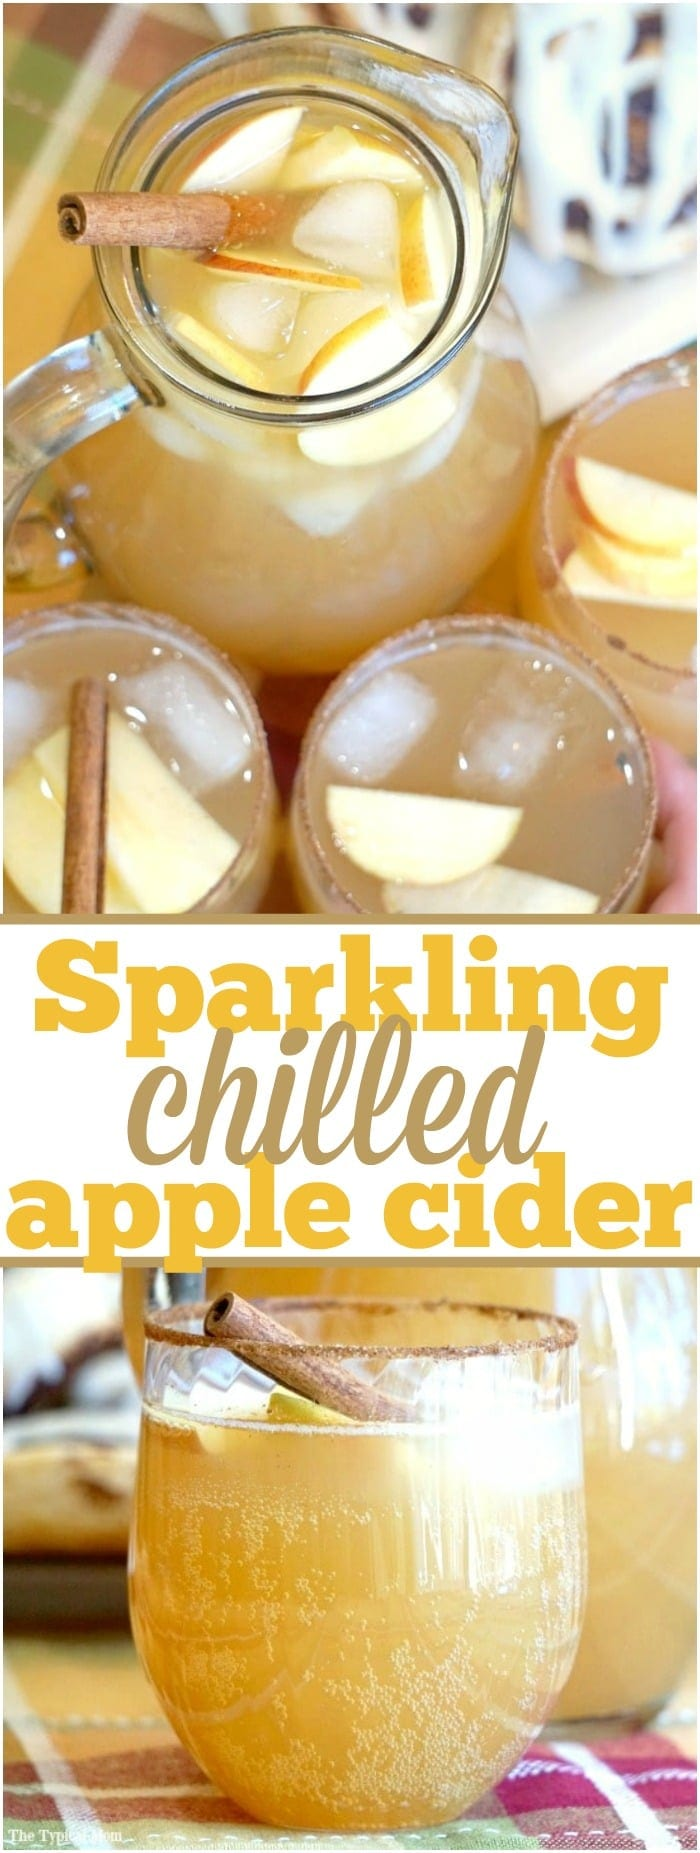 Chilled sparkling apple cider recipe that tastes amazing!! Make it a mocktail or a cocktail, perfect Fall drink that everyone raves about!! #apple #cider #mocktail #cocktail #chilled #drink #fall #sparkling